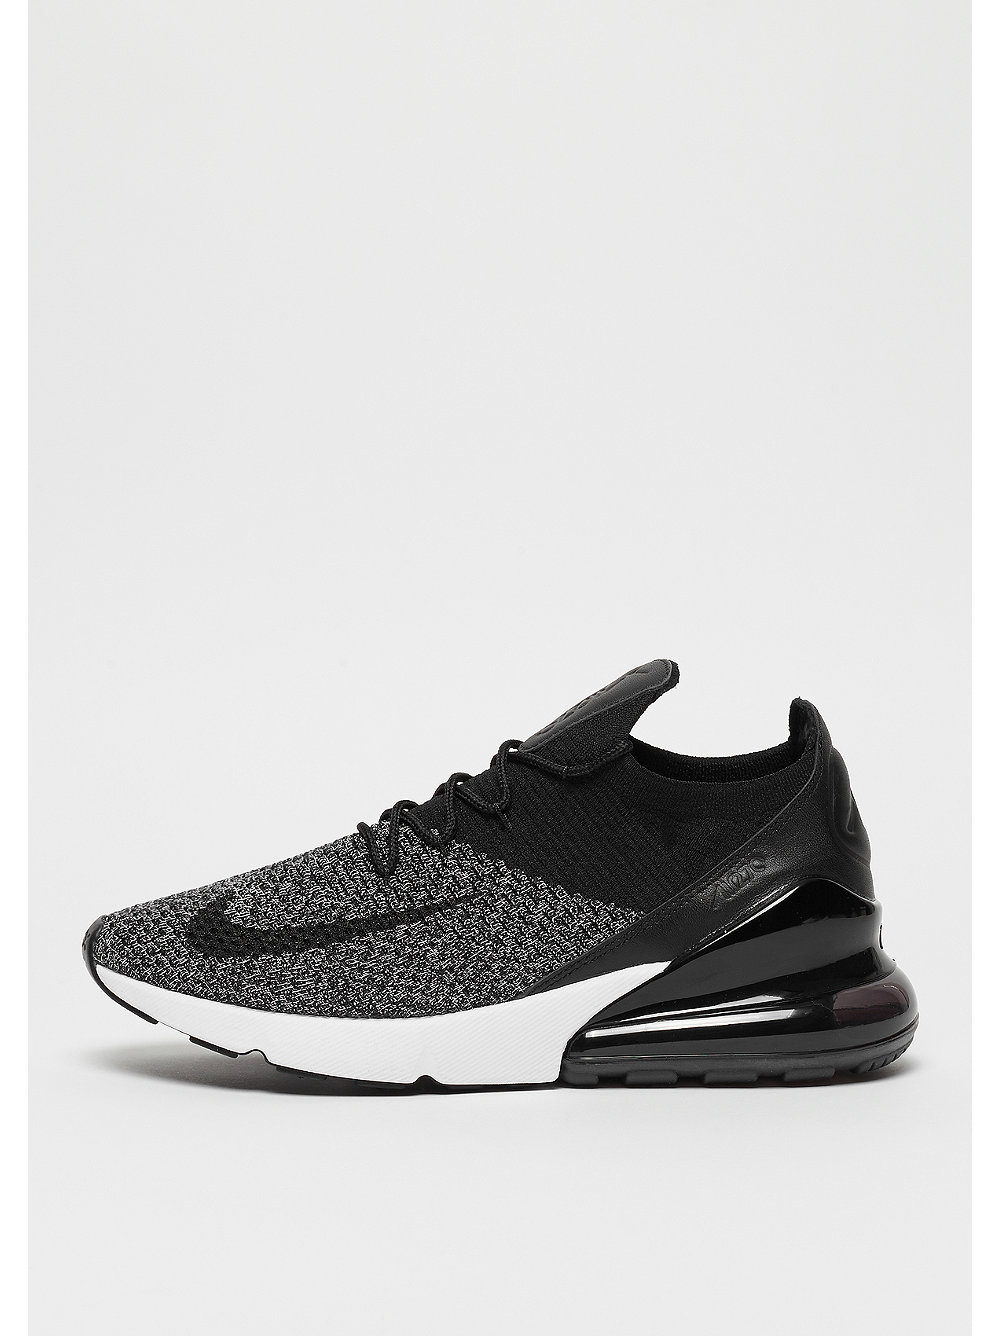 timeless design 69694 e2861 Air Max 270 Flyknit black Sneaker von NIKE bei SNIPES!